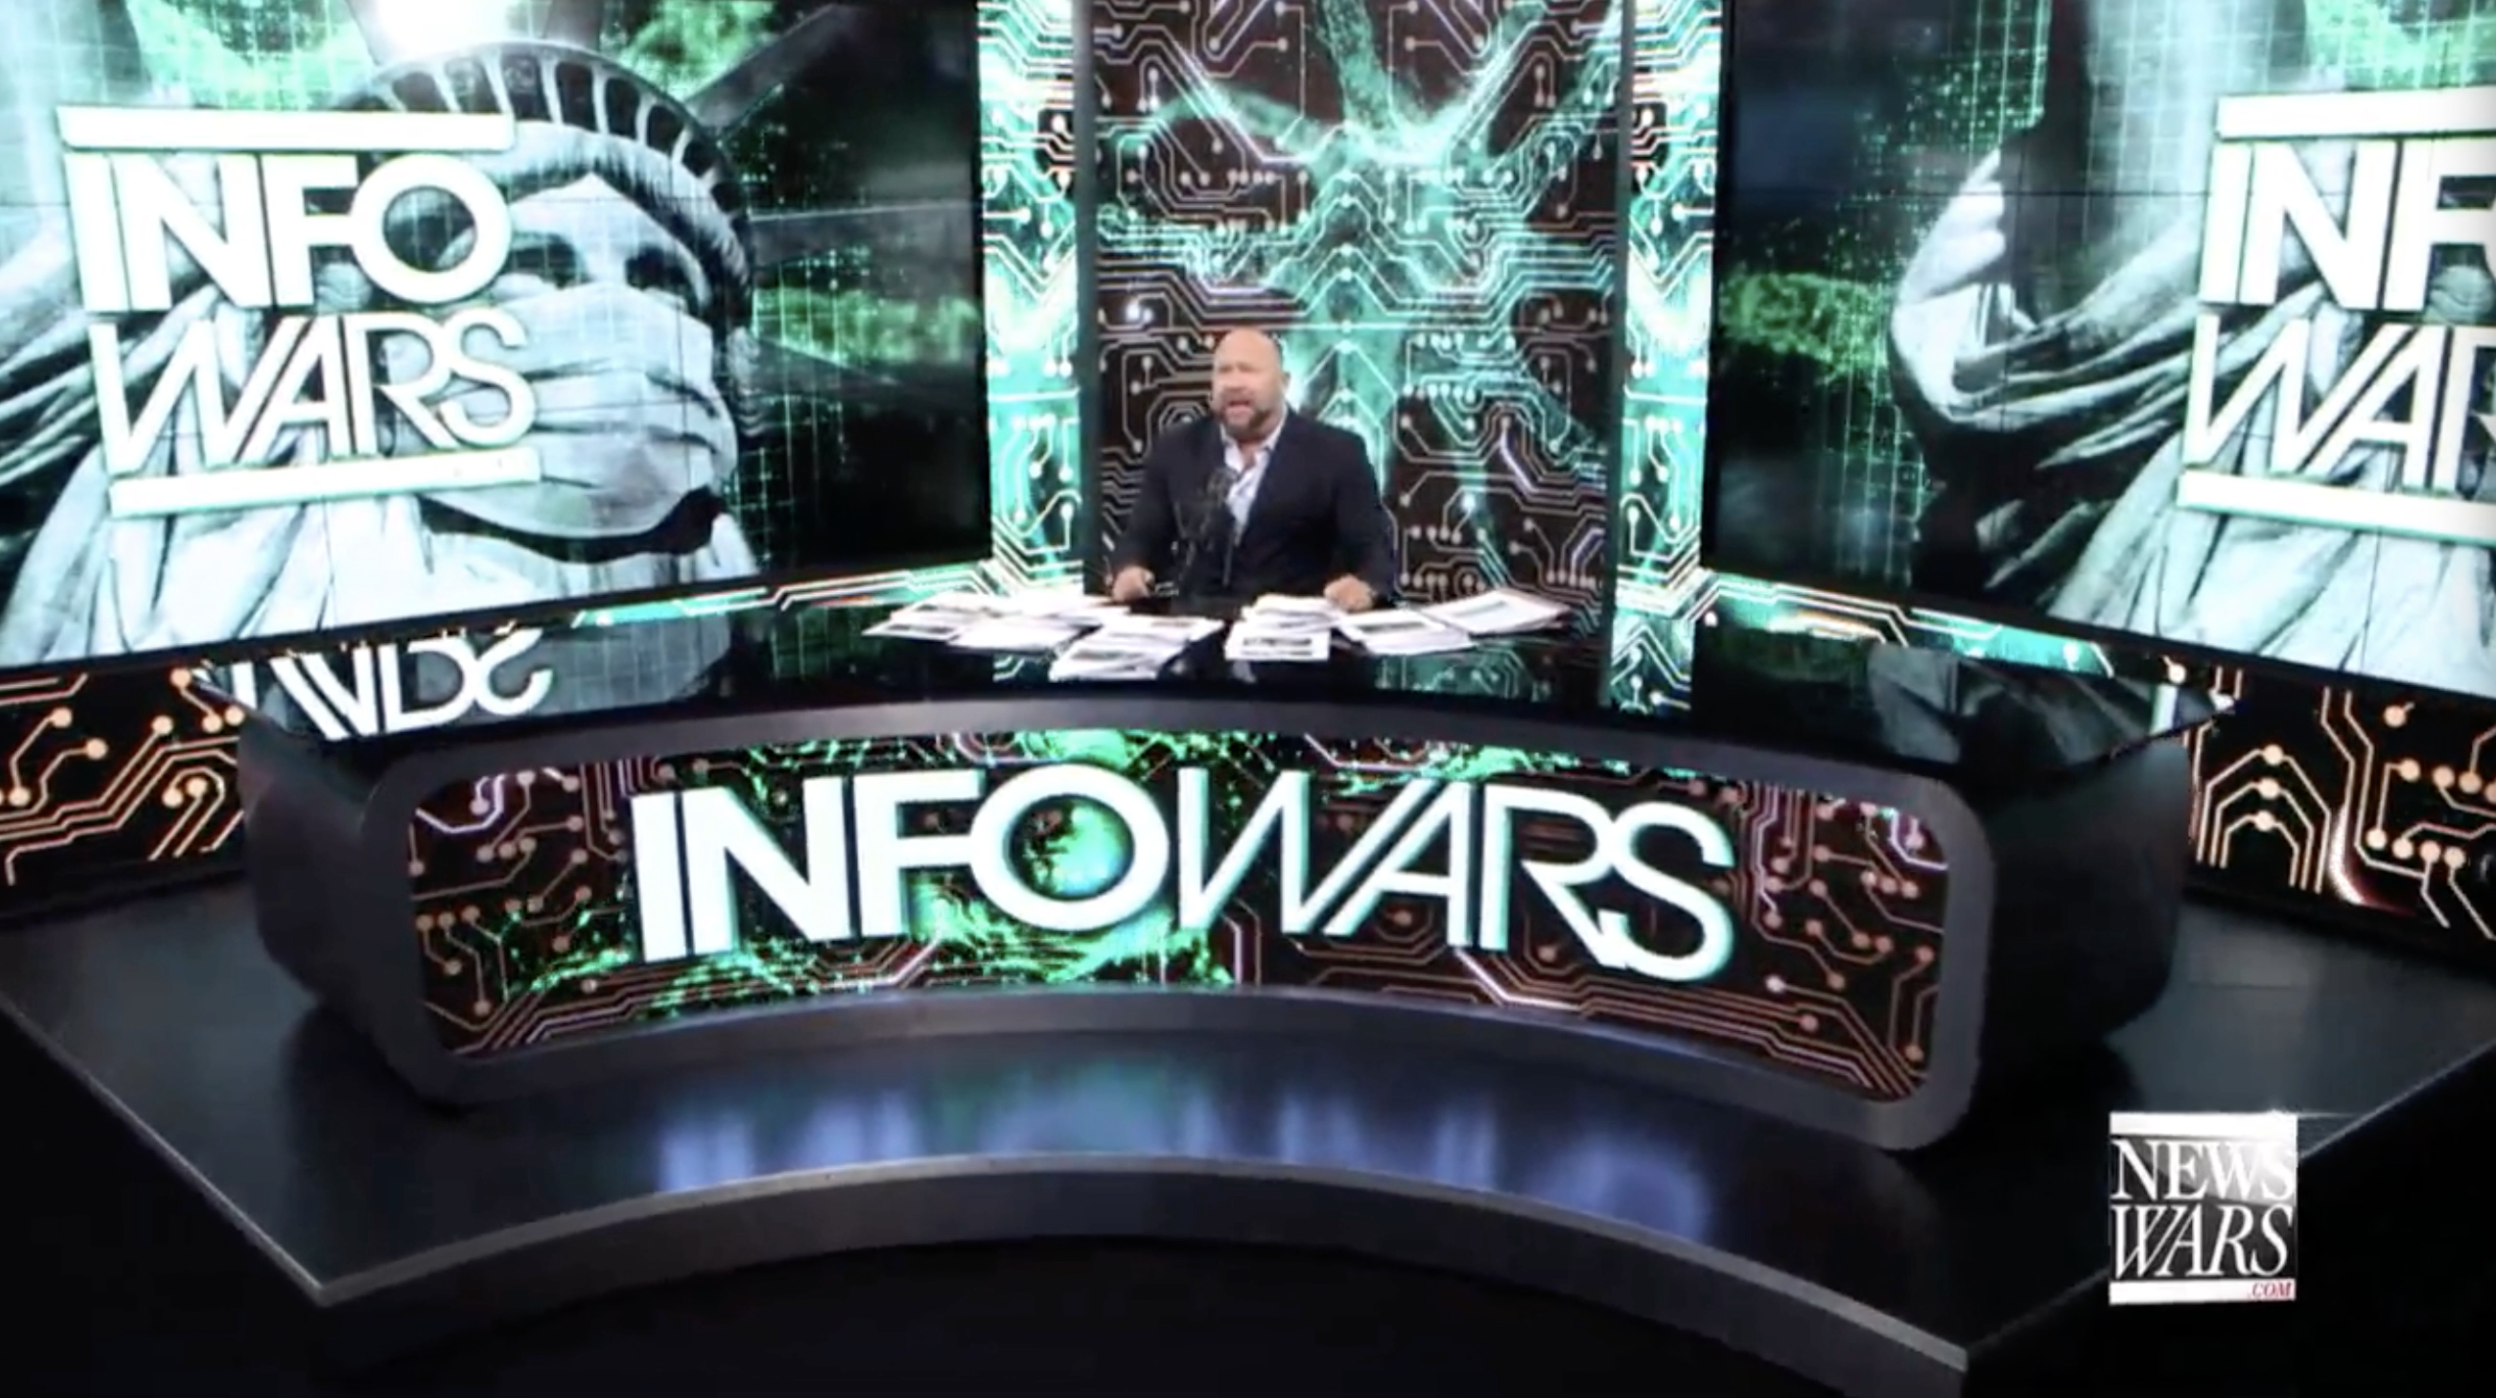 Alex Jones Infowars 4 1 2020